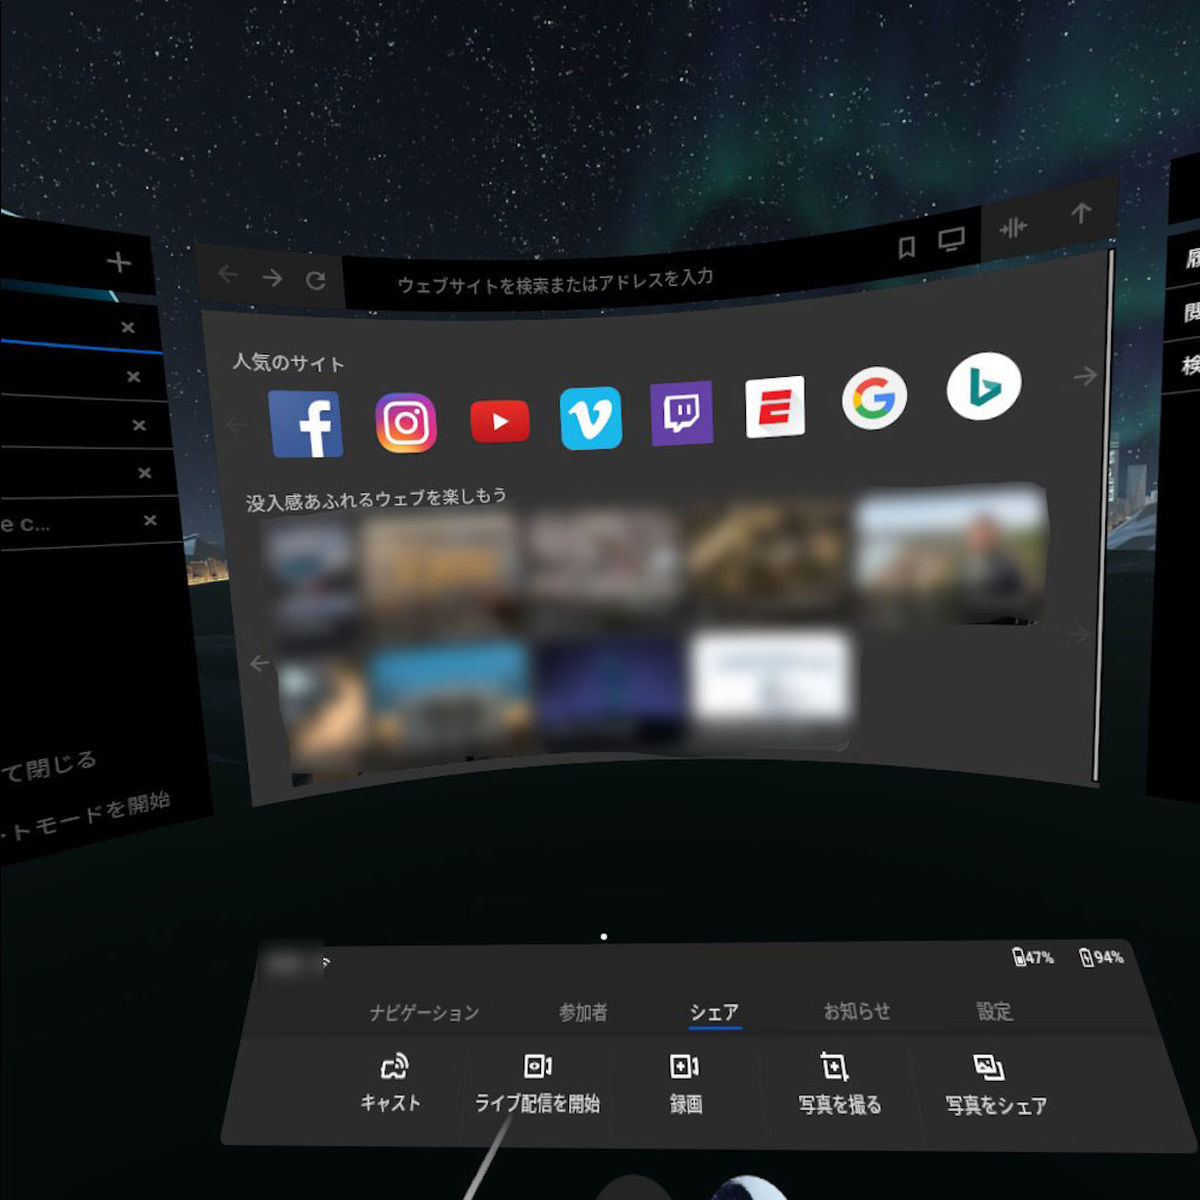 An example screenshot of Oculus browser on Oculus Go